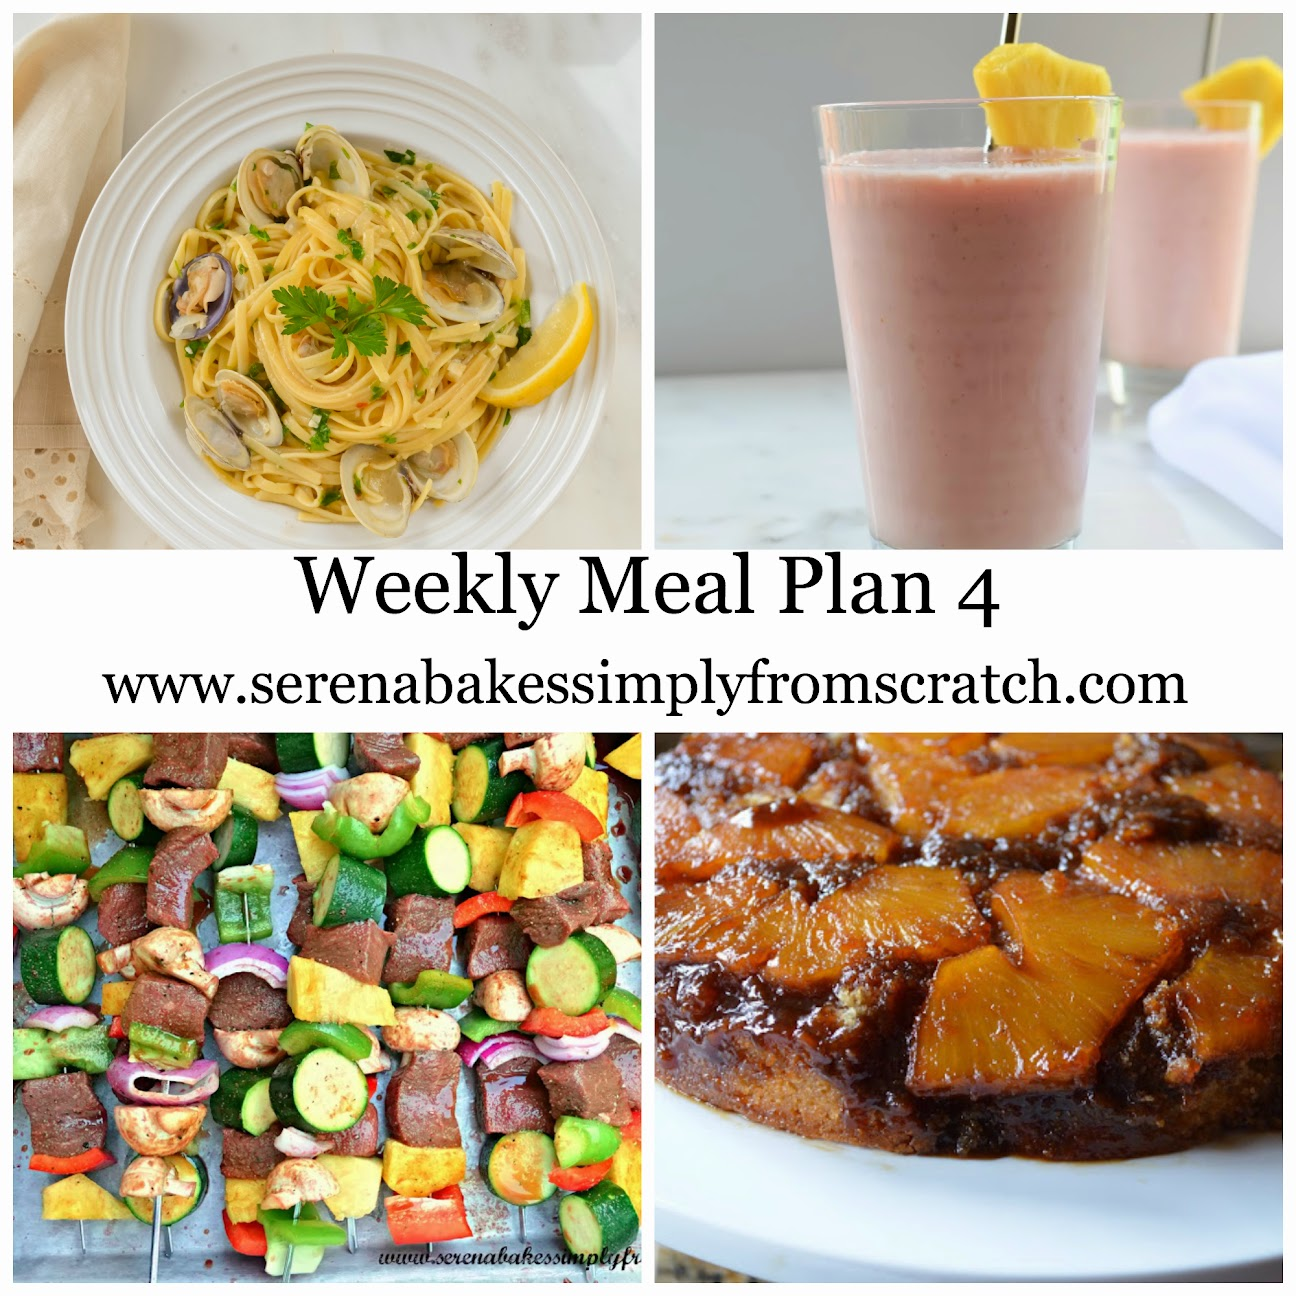 Weekly Meal Plan 4 | Serena Bakes Simply From Scratch